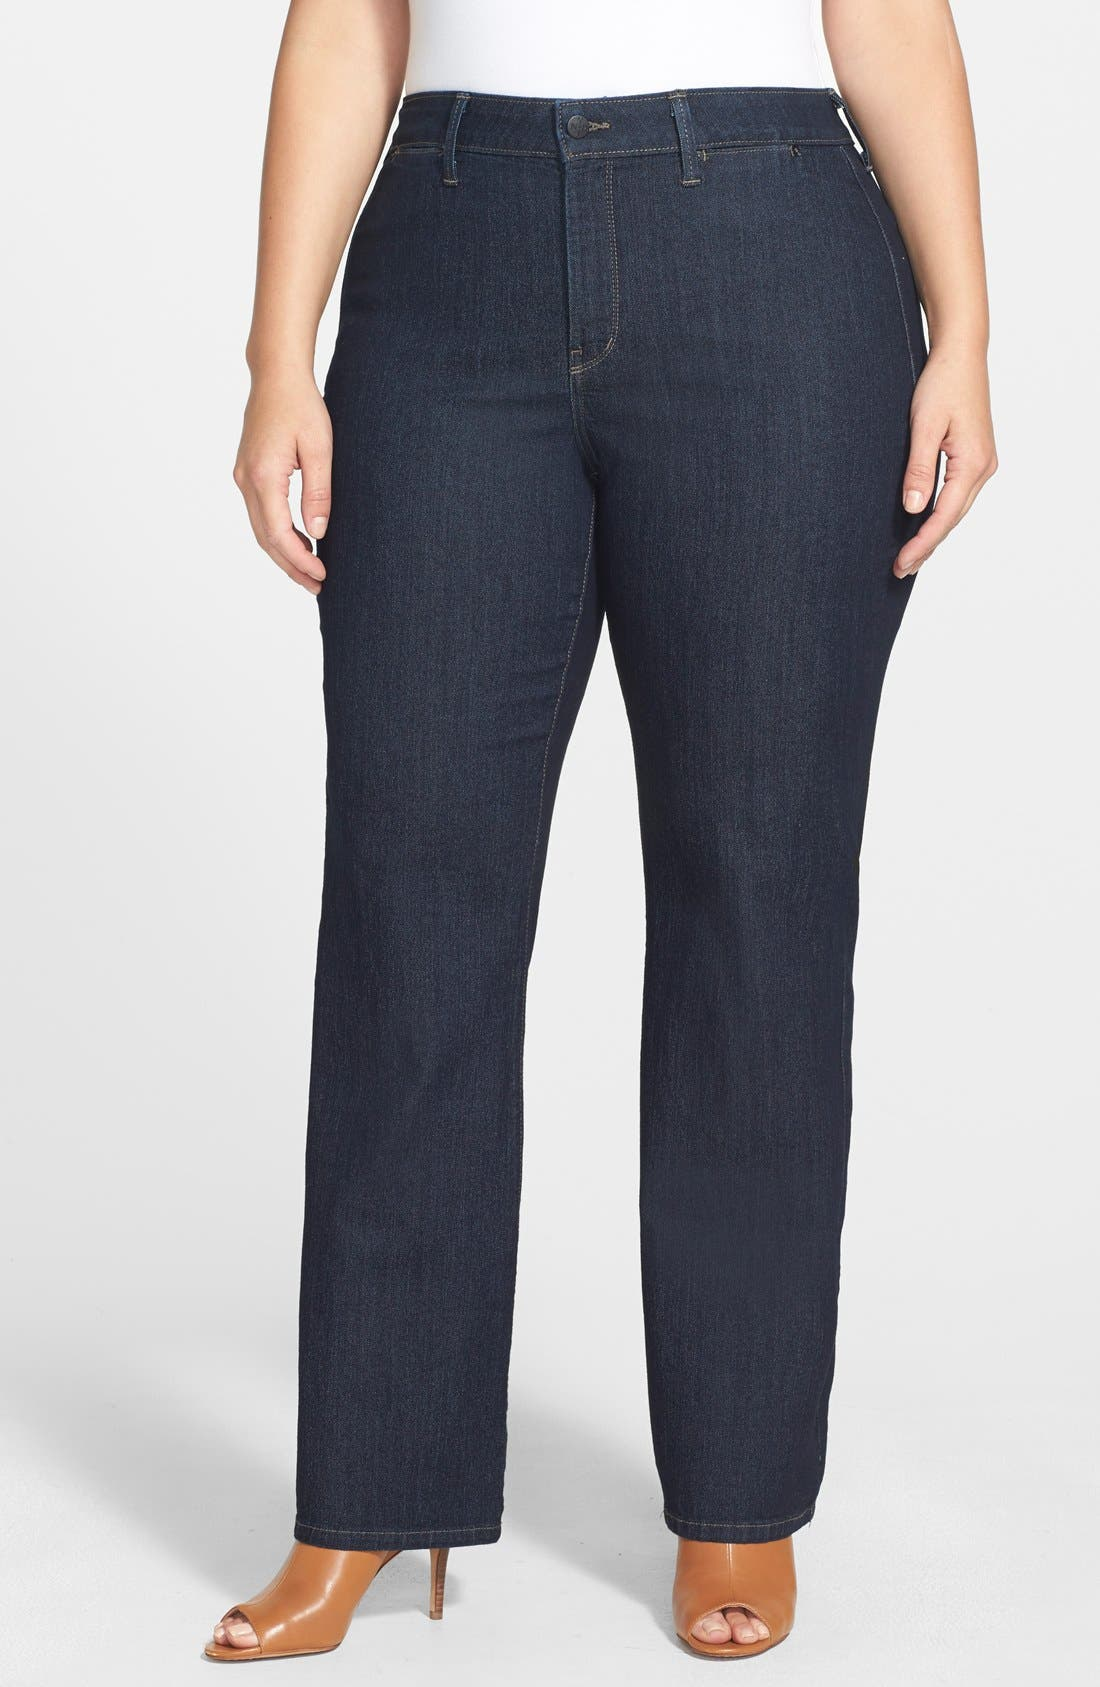 'Isabella' High Rise Stretch Trouser Jeans in Dark Enzyme